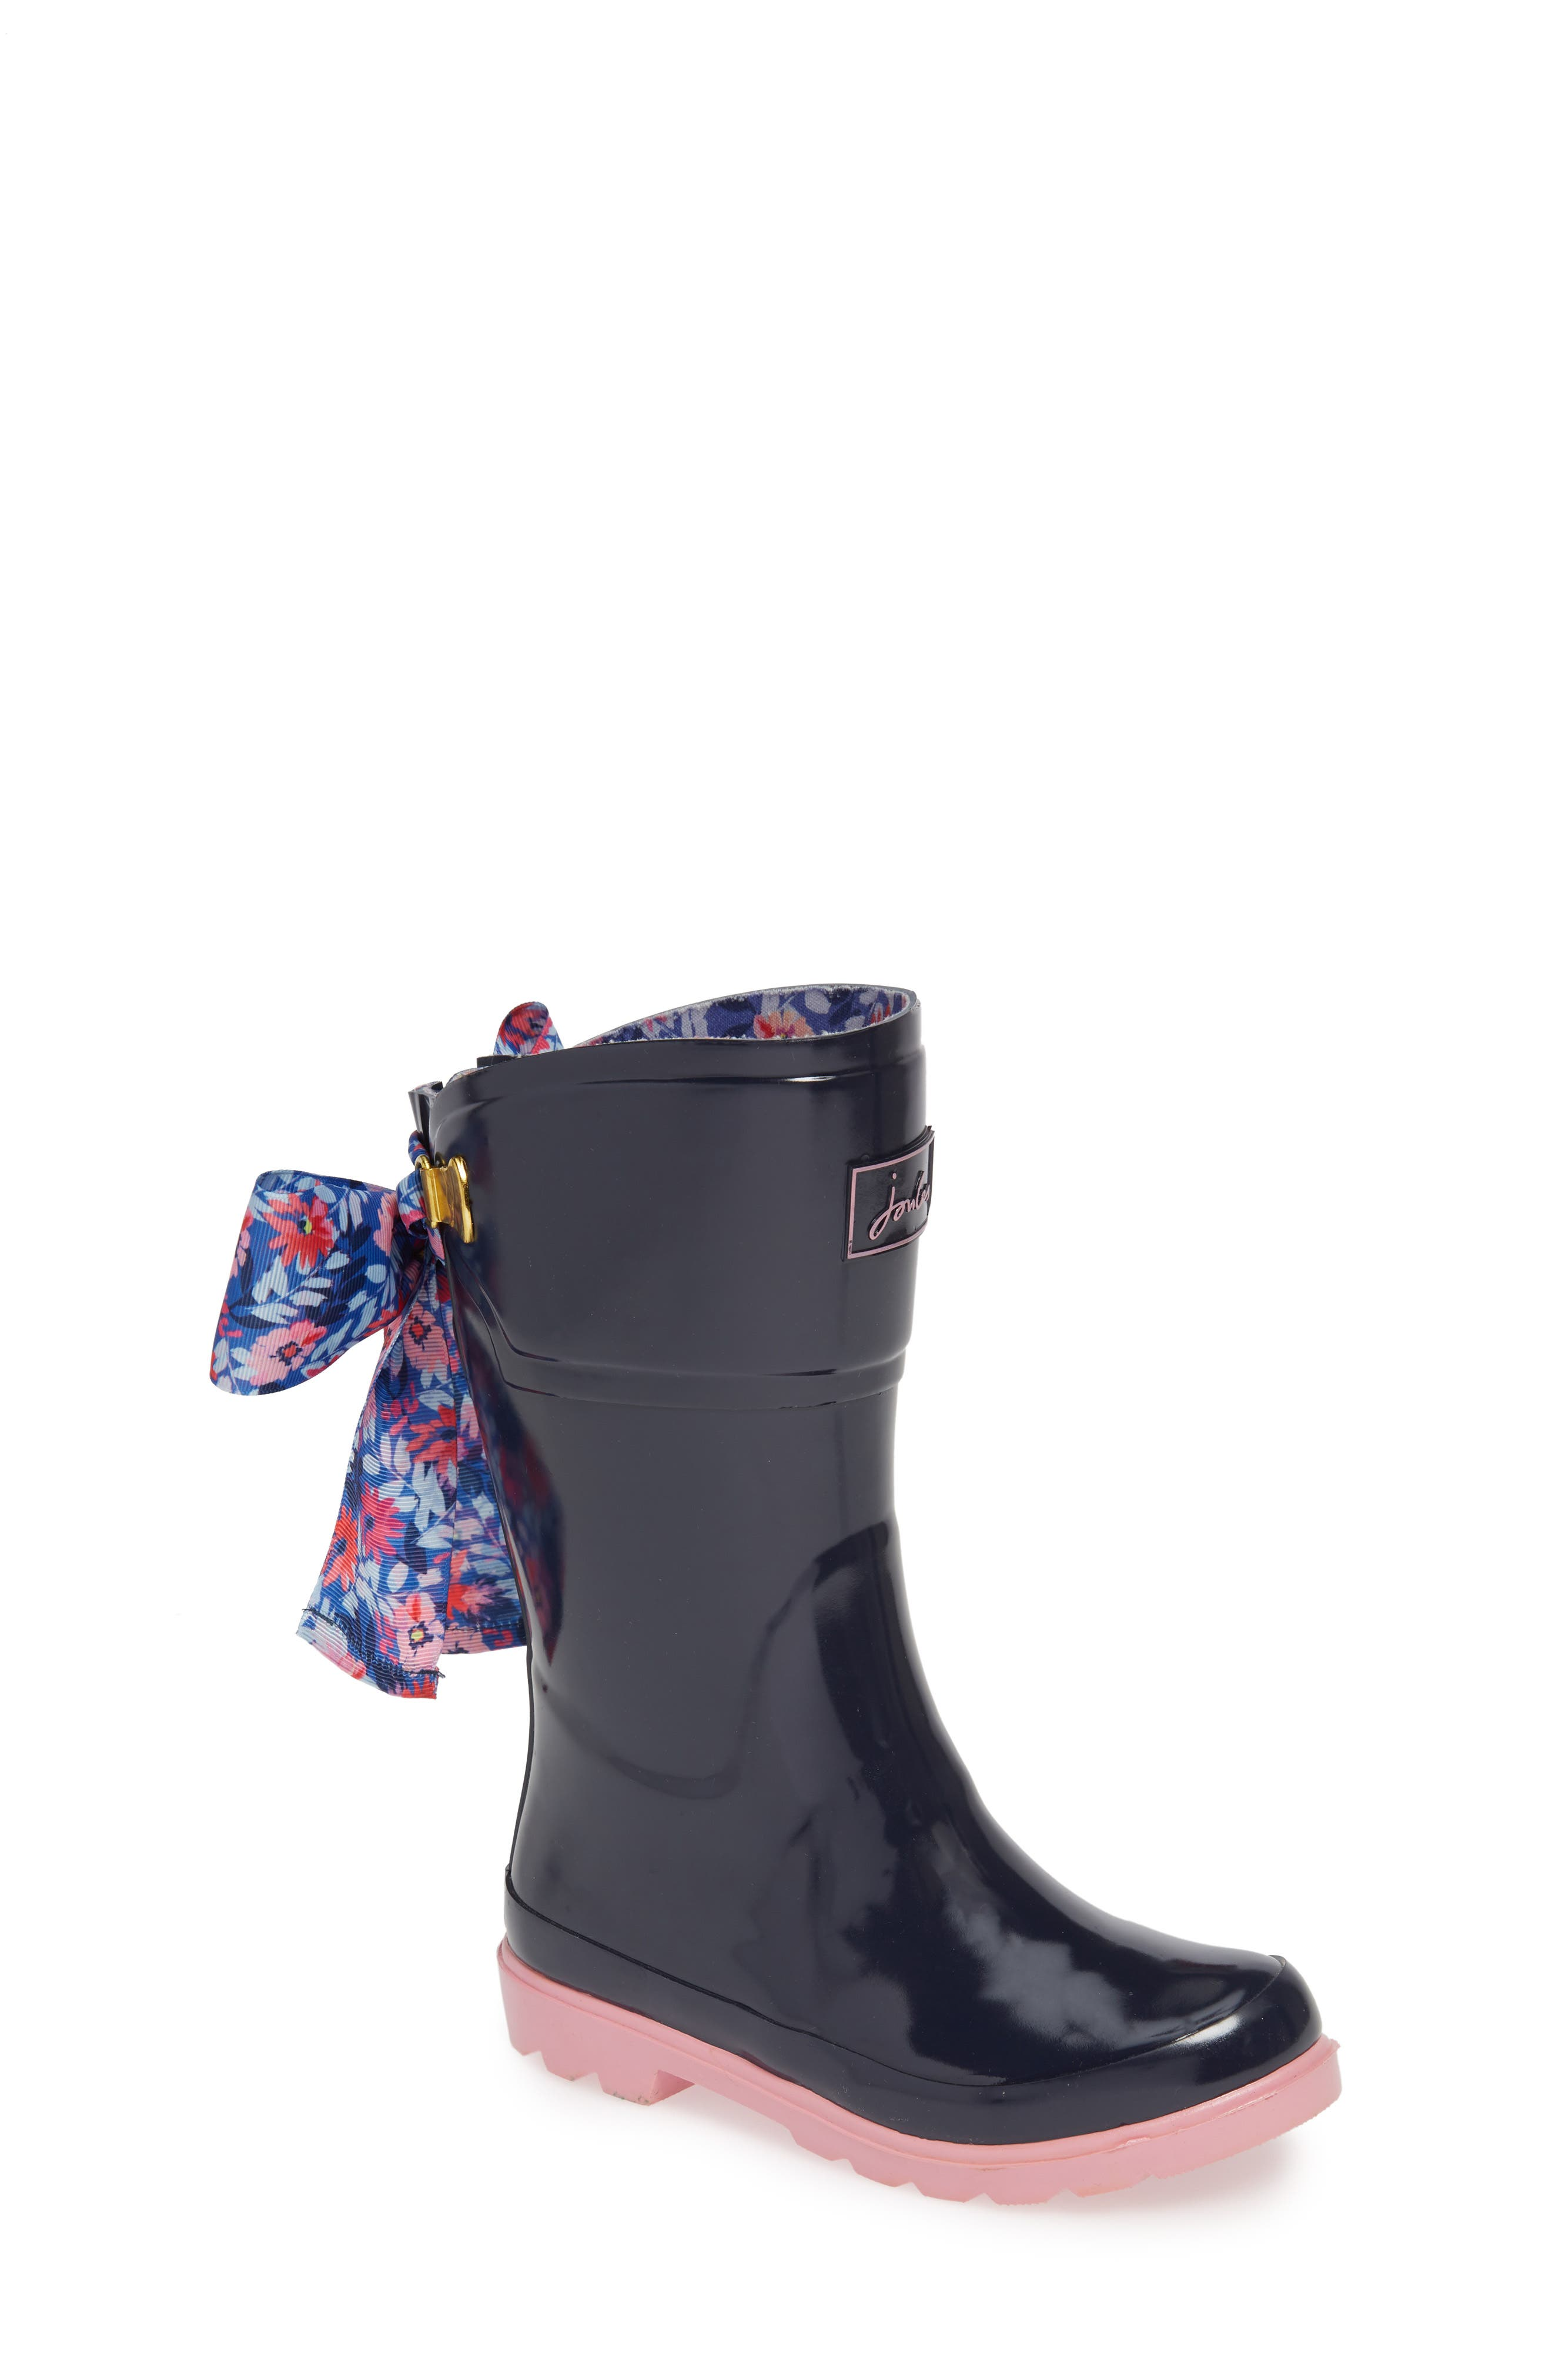 Bow Welly Waterproof Rain Boot,                             Main thumbnail 1, color,                             FRENCH NAVY